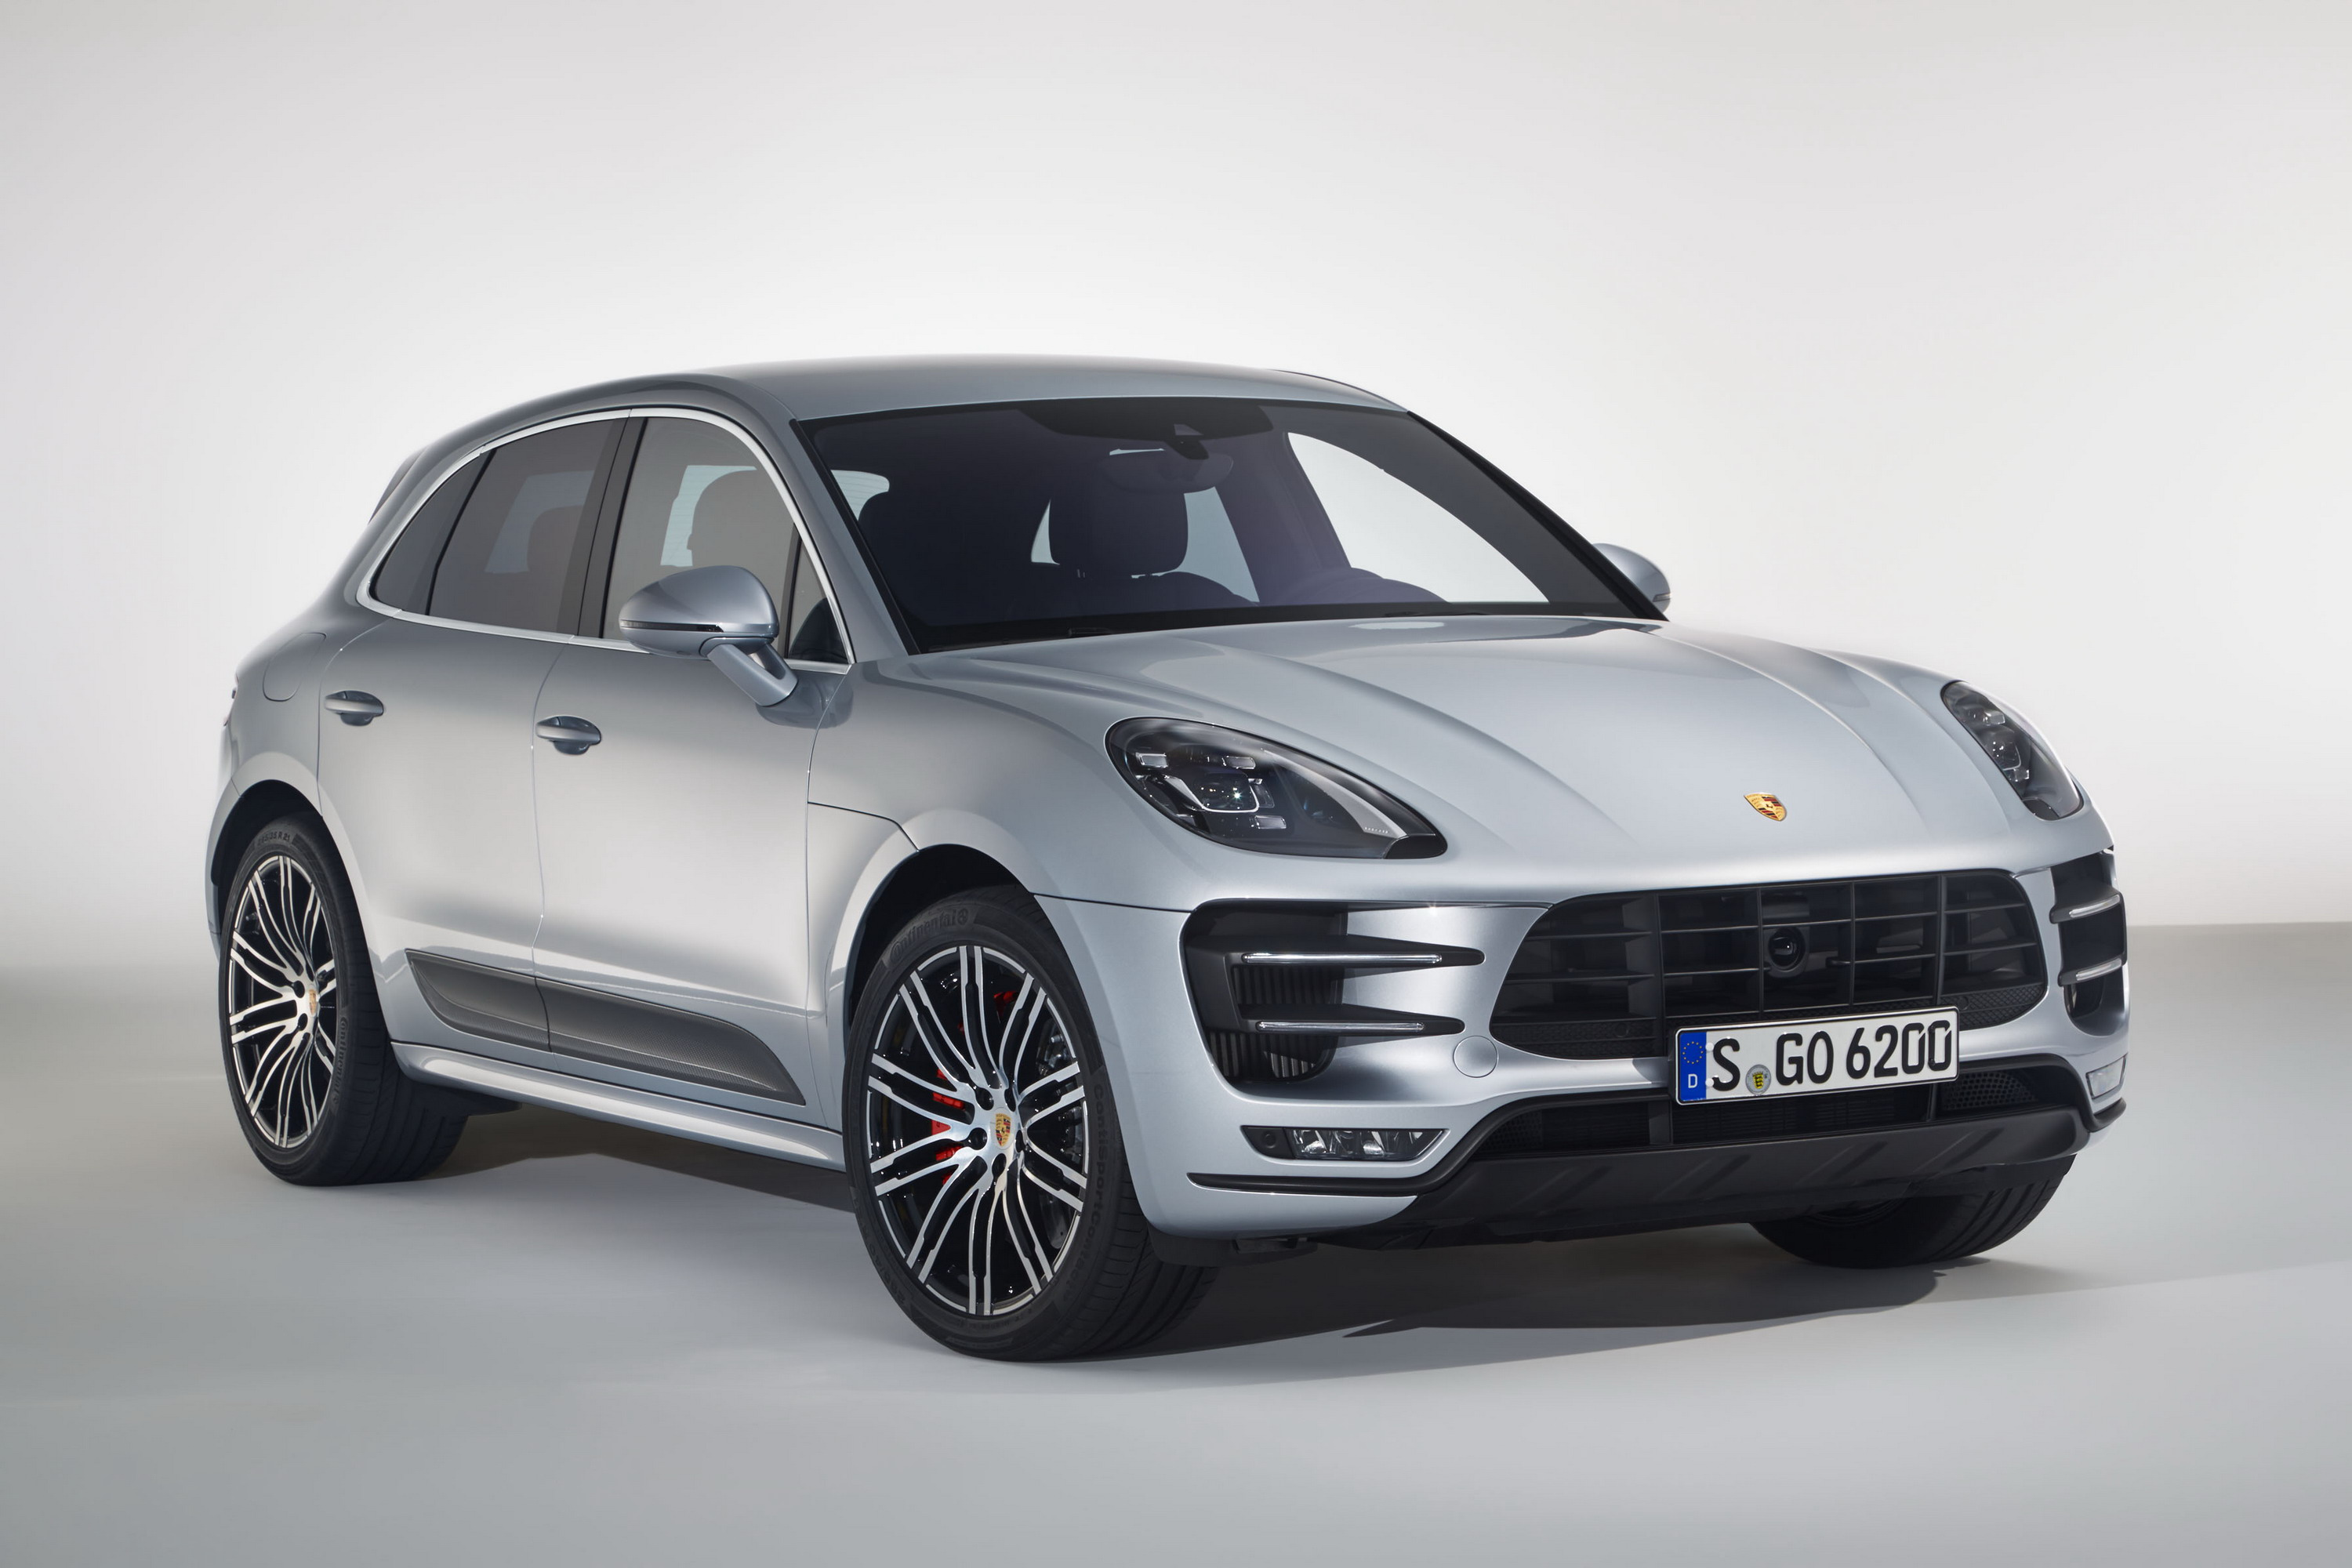 2017 Porsche Macan Turbo With Performance Package | Top Speed